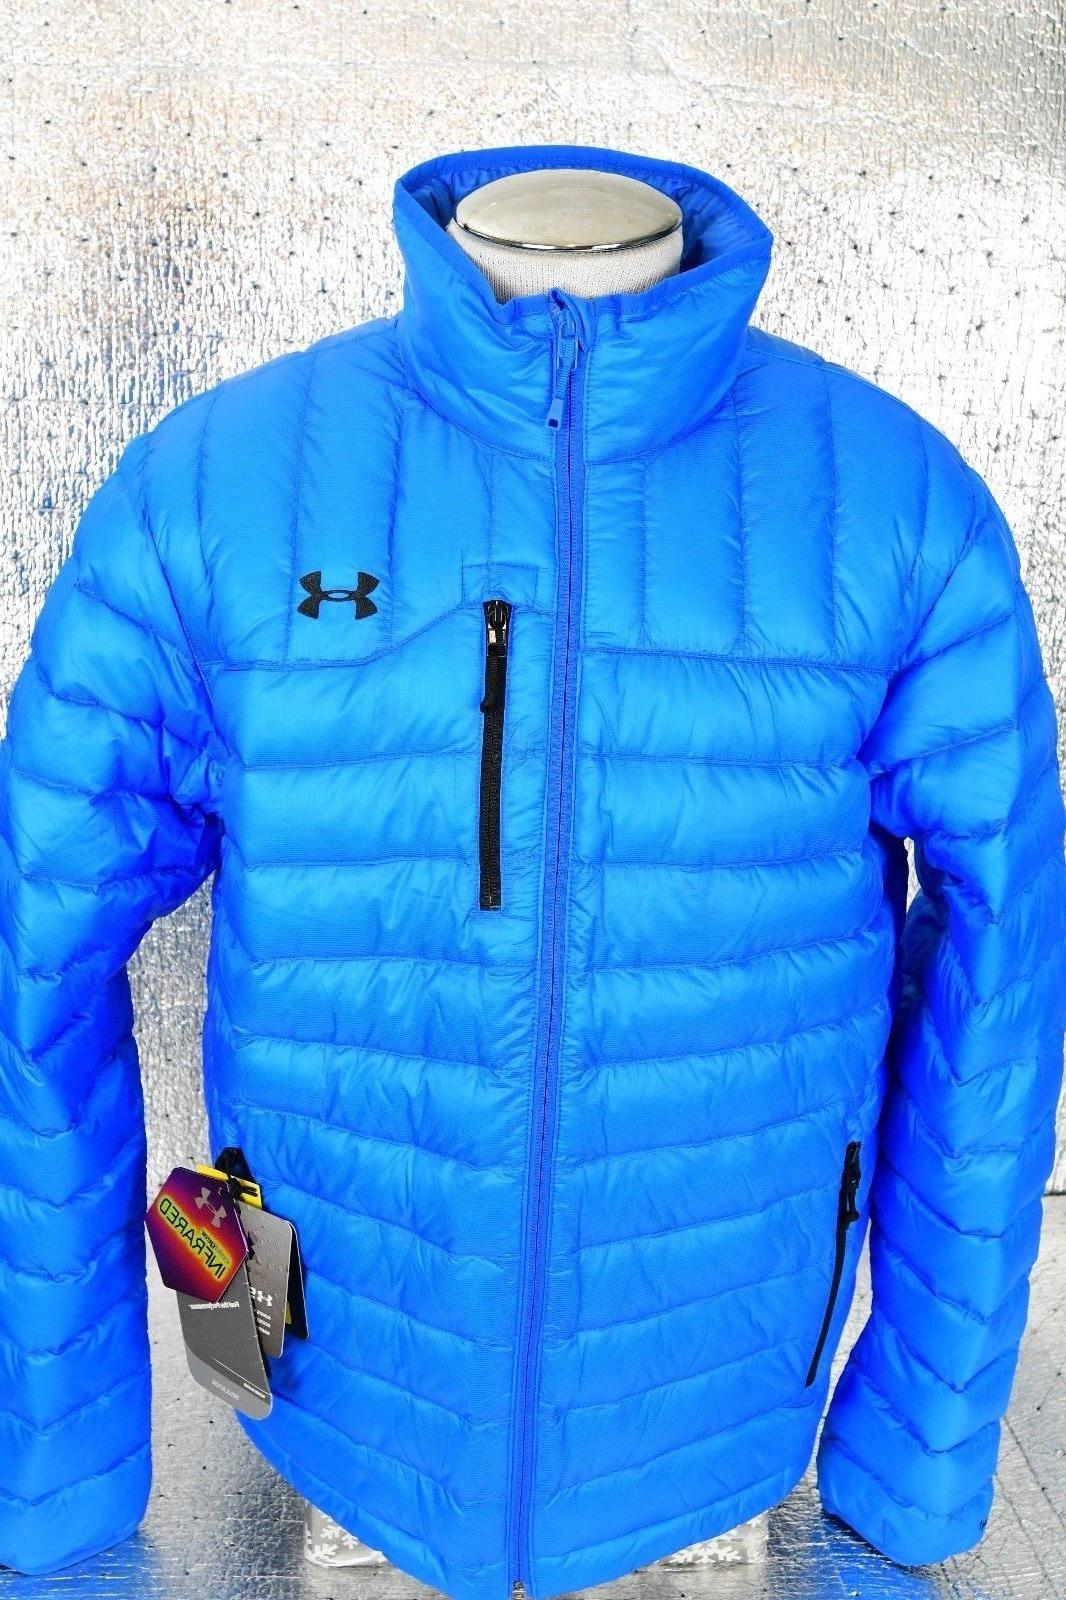 Under Armour Men's Storm ColdGear Infrared Turing Jacket